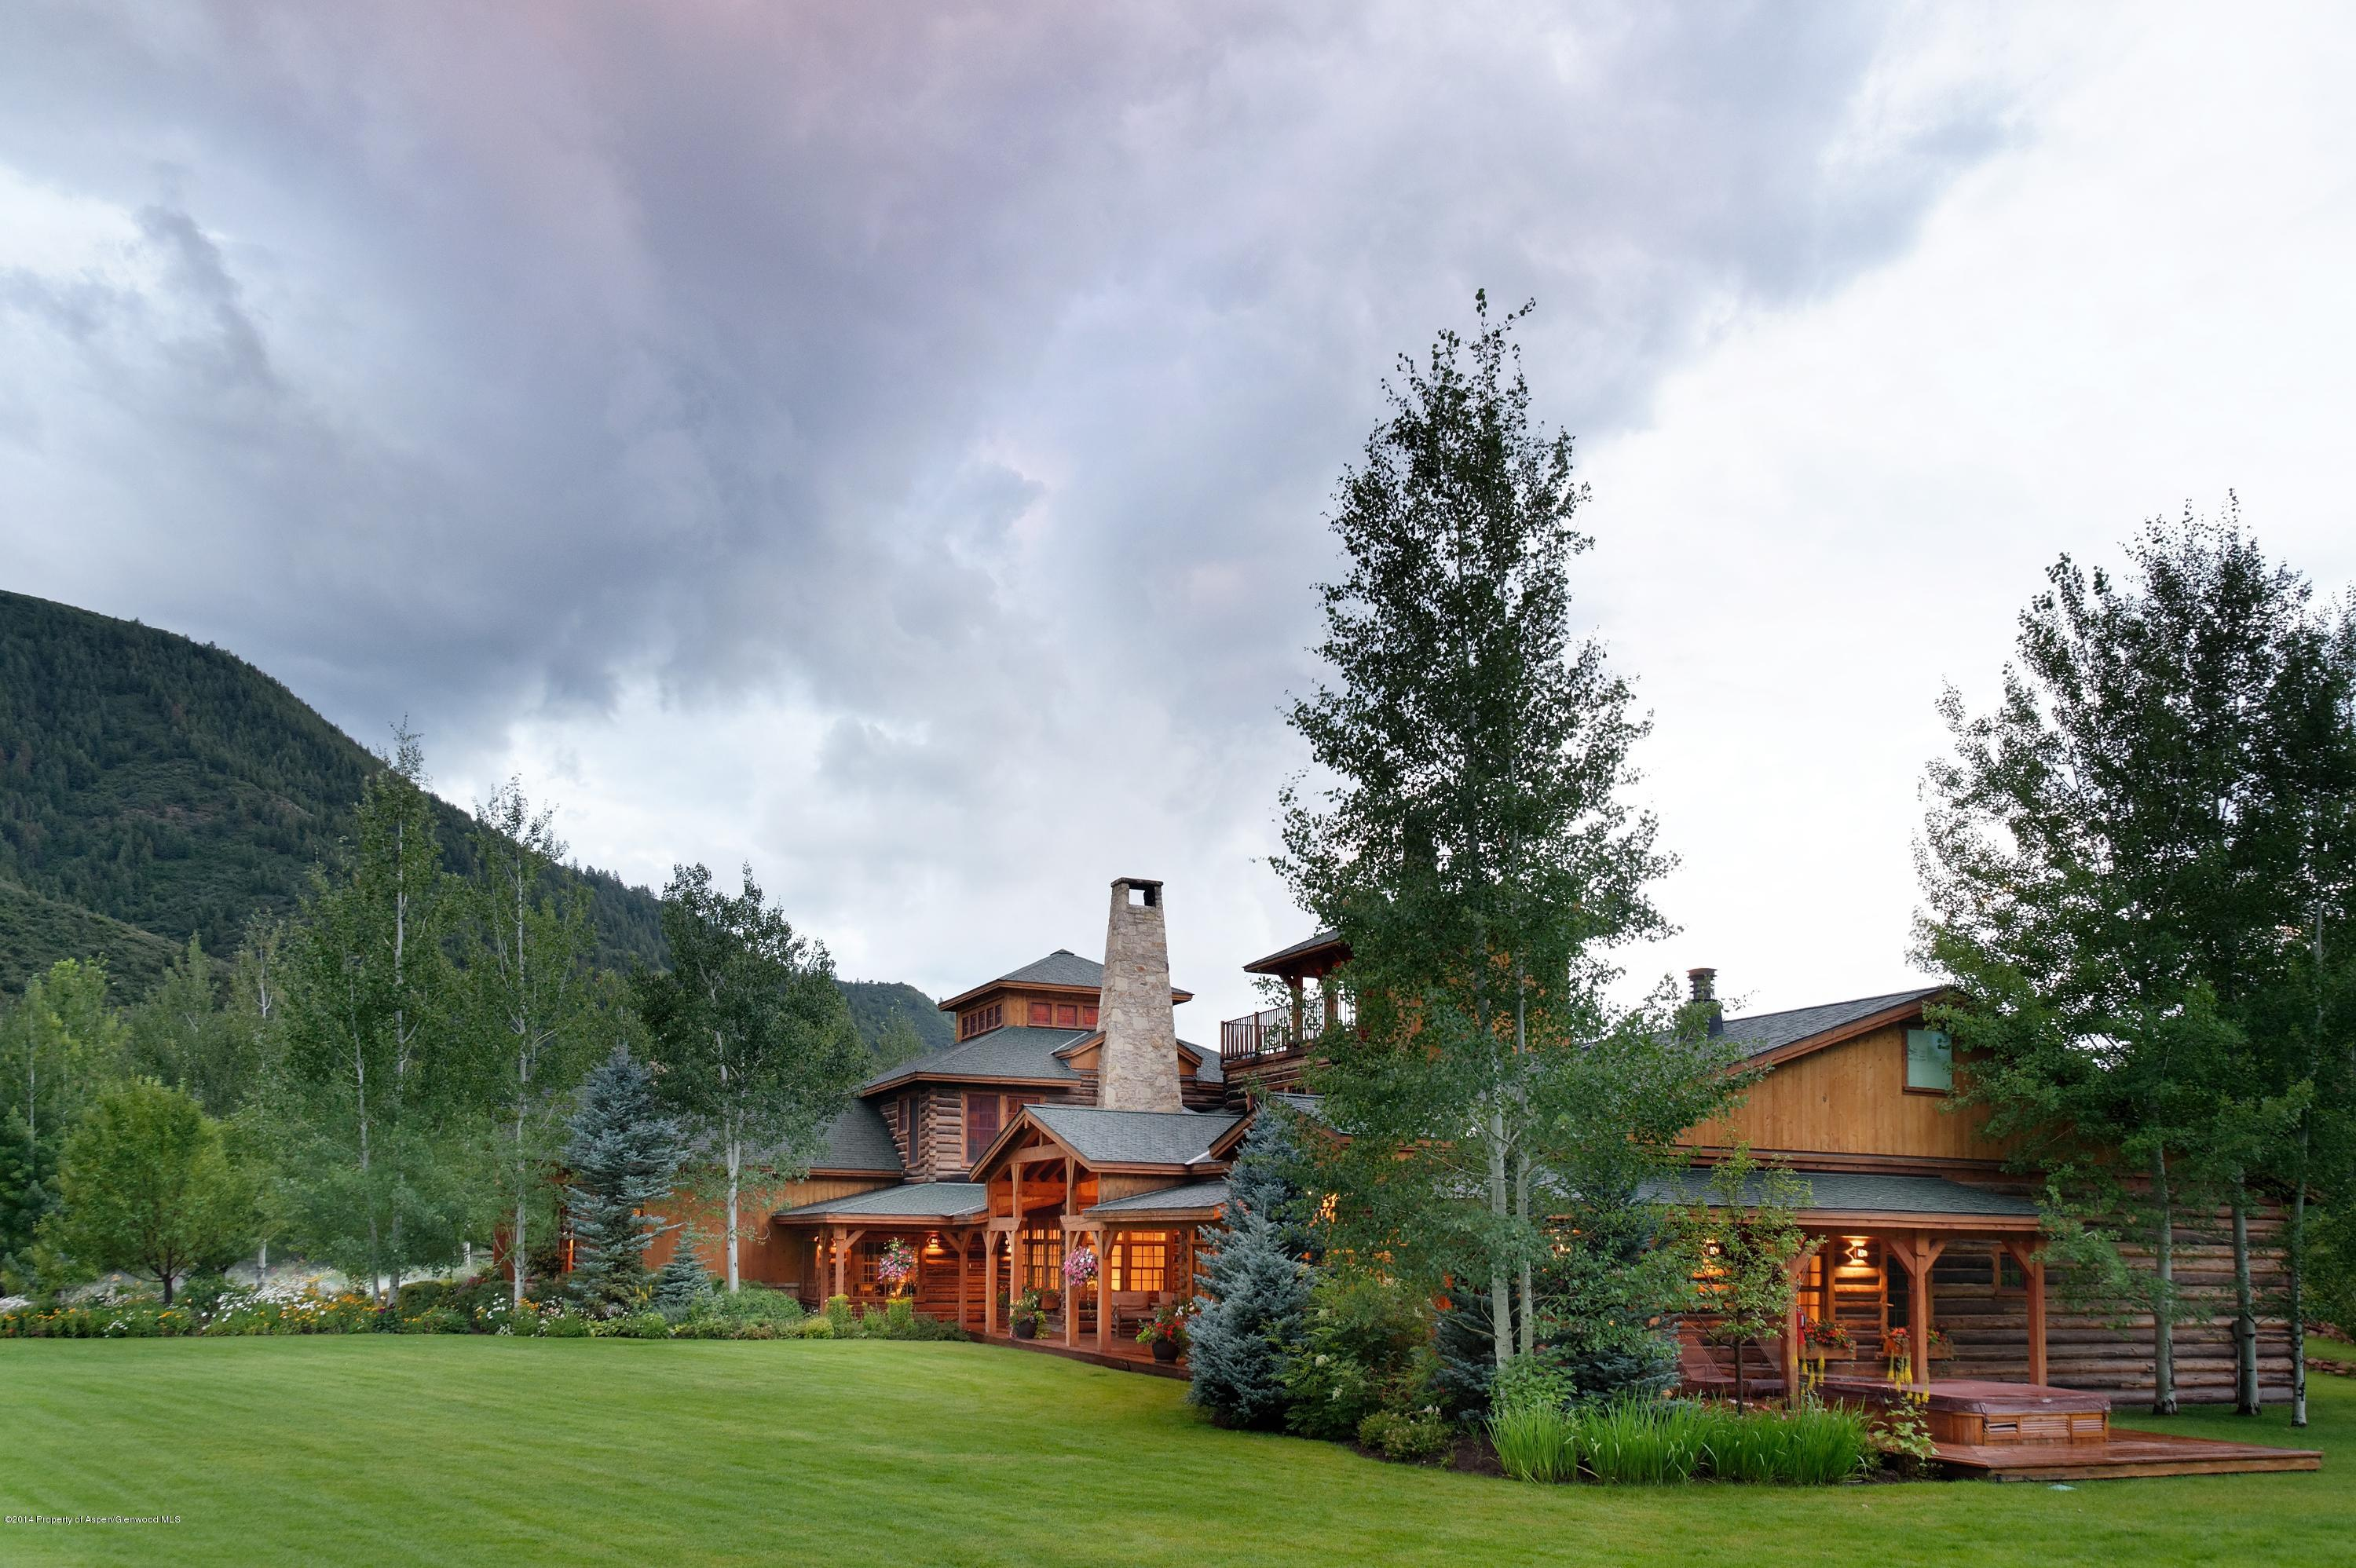 MLS# 135595 - 44 - 50 E River Ranch Road, Snowmass, CO 81654